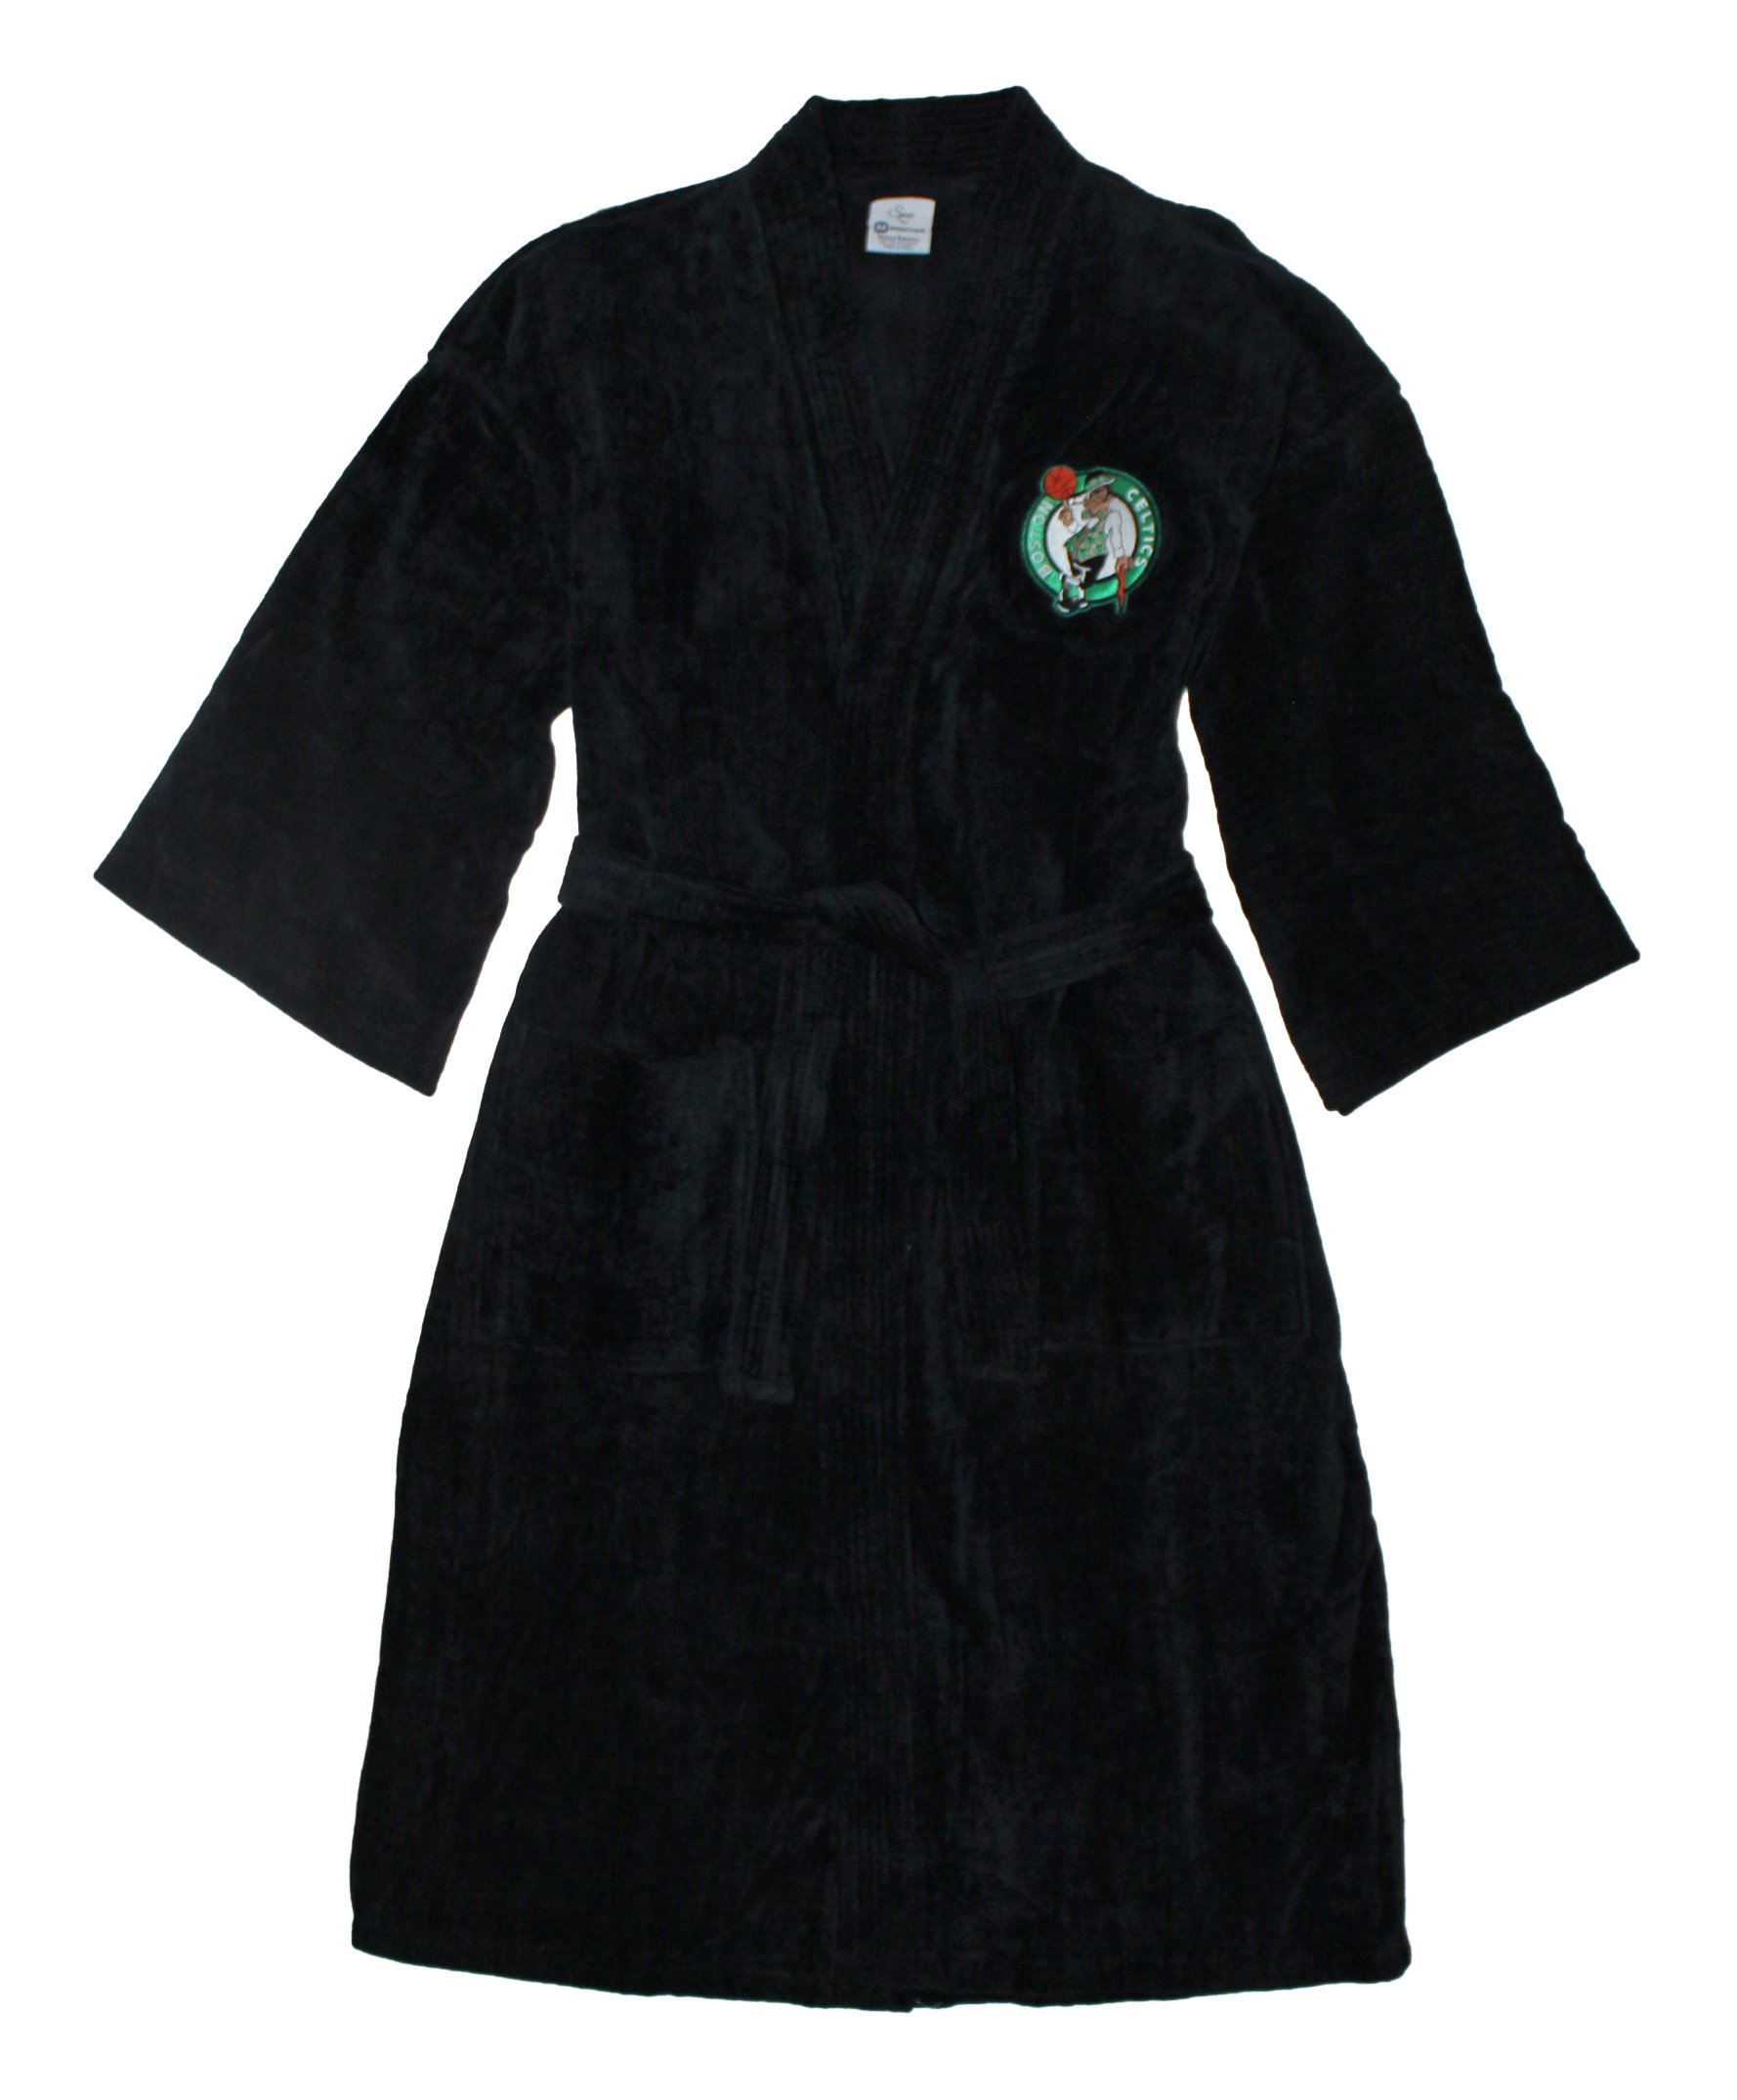 Boston Celtics Velour Robe With Embroidered Logo by McArthur